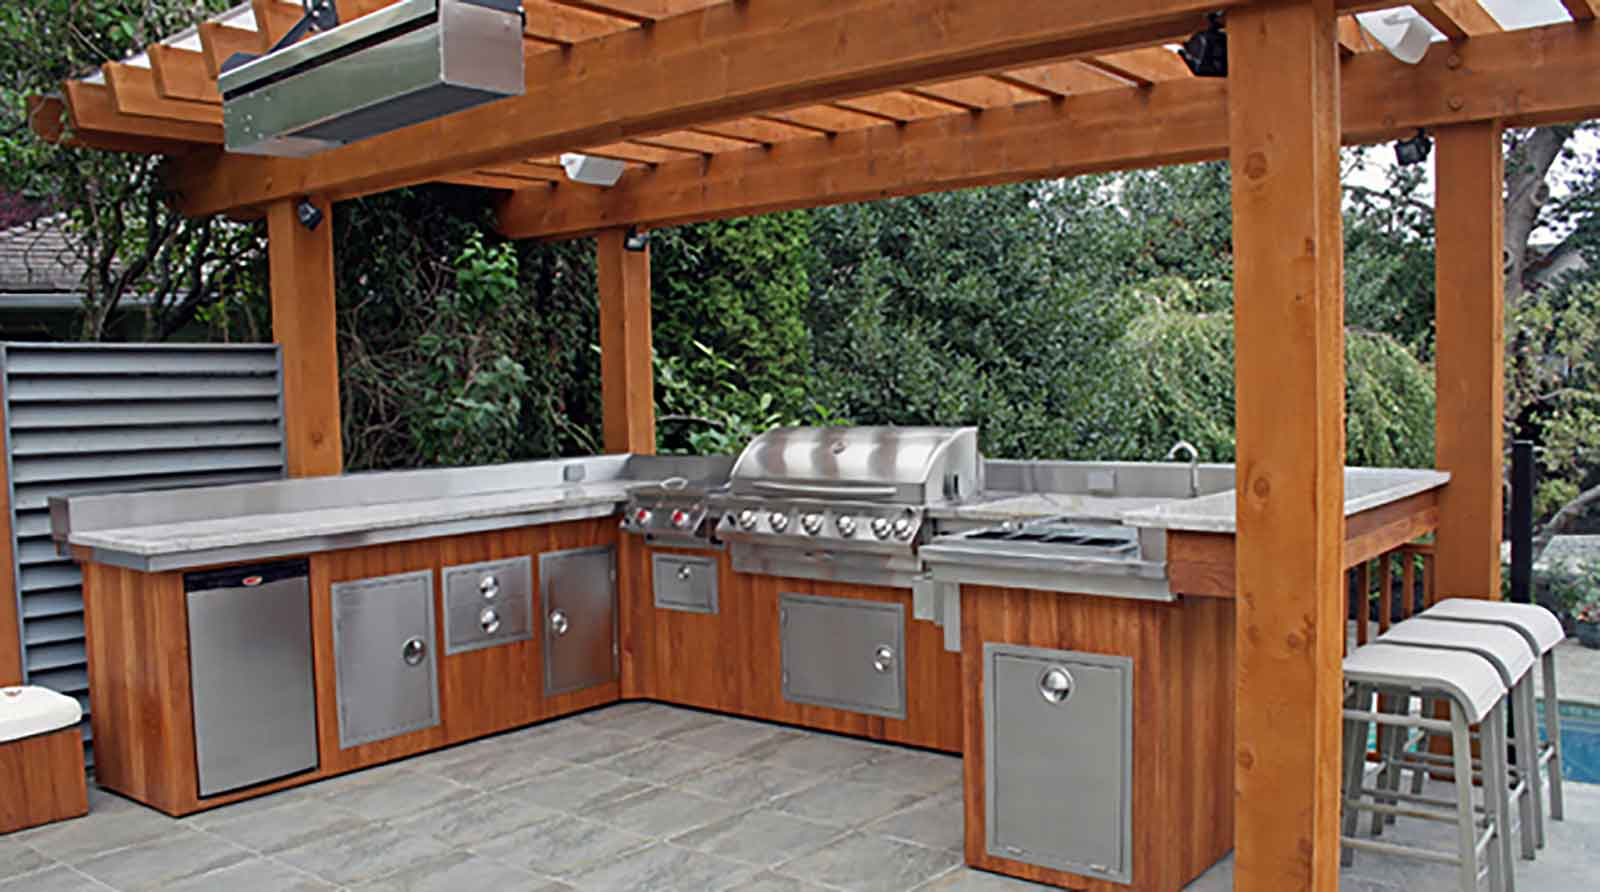 outdoor kitchen design ideas backyard custom designed outdoor kitchens azuro concepts 850